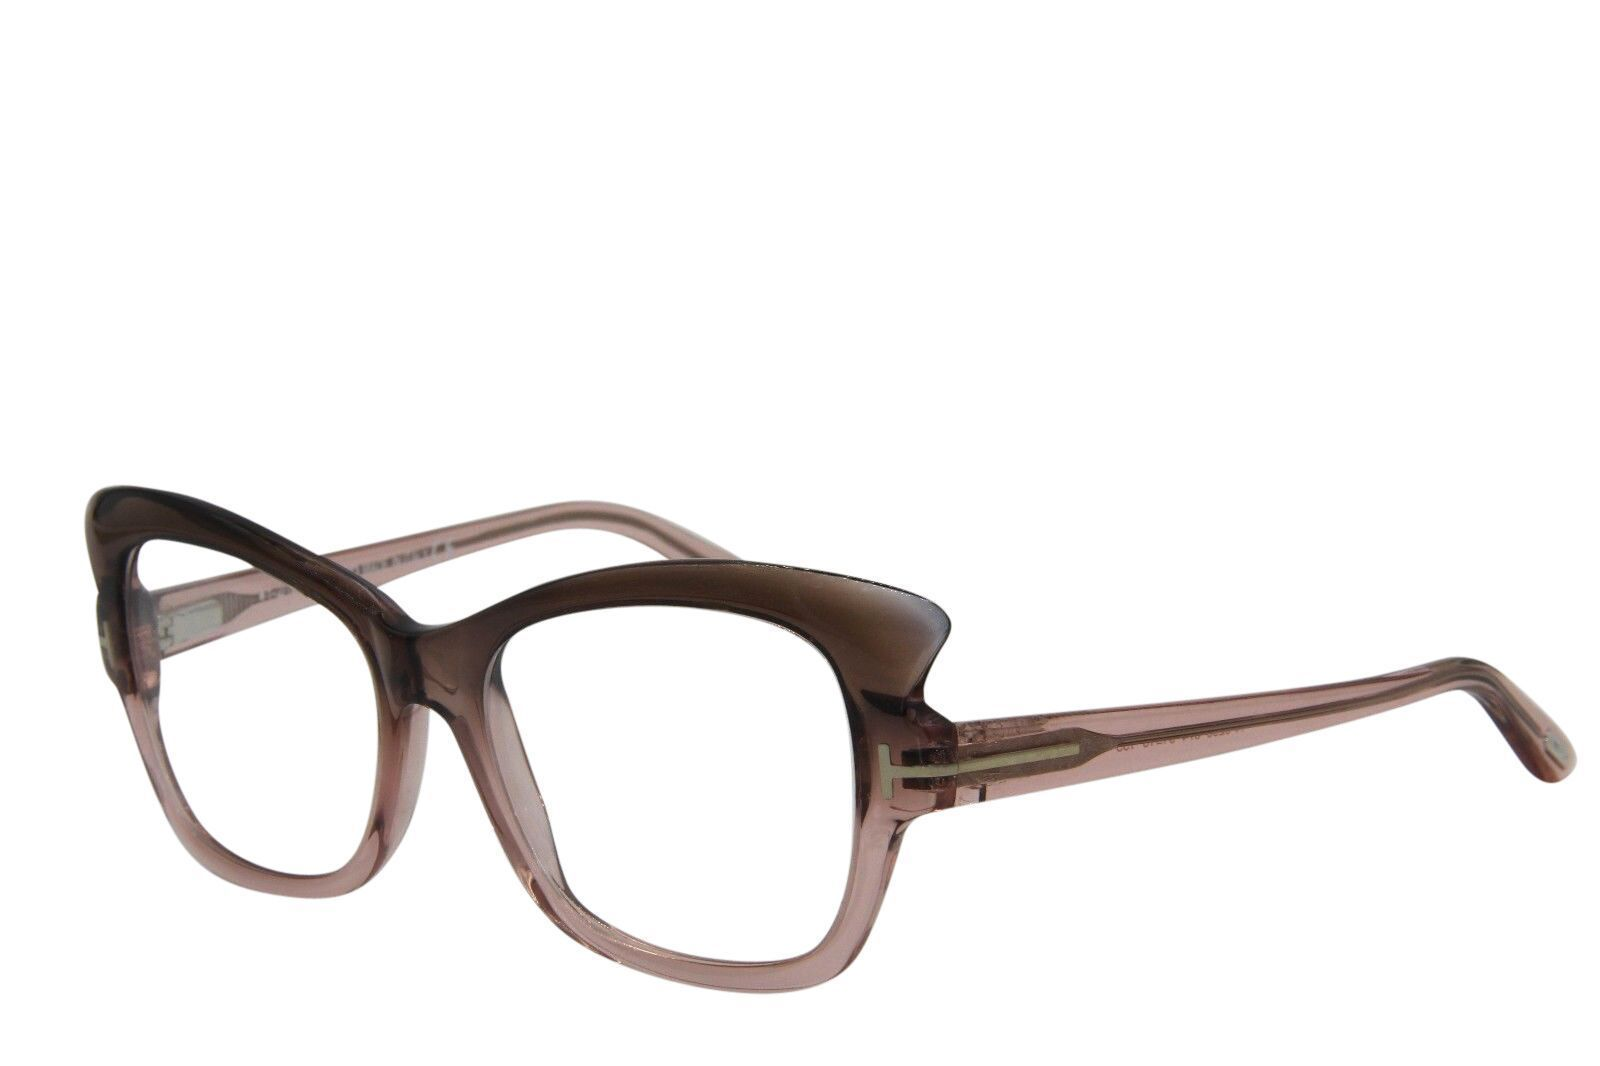 BRAND NEW TOM FORD TF 5268 074 BROWN EYEGLASSES AUTHENTIC FRAME RX TF5268 51-16